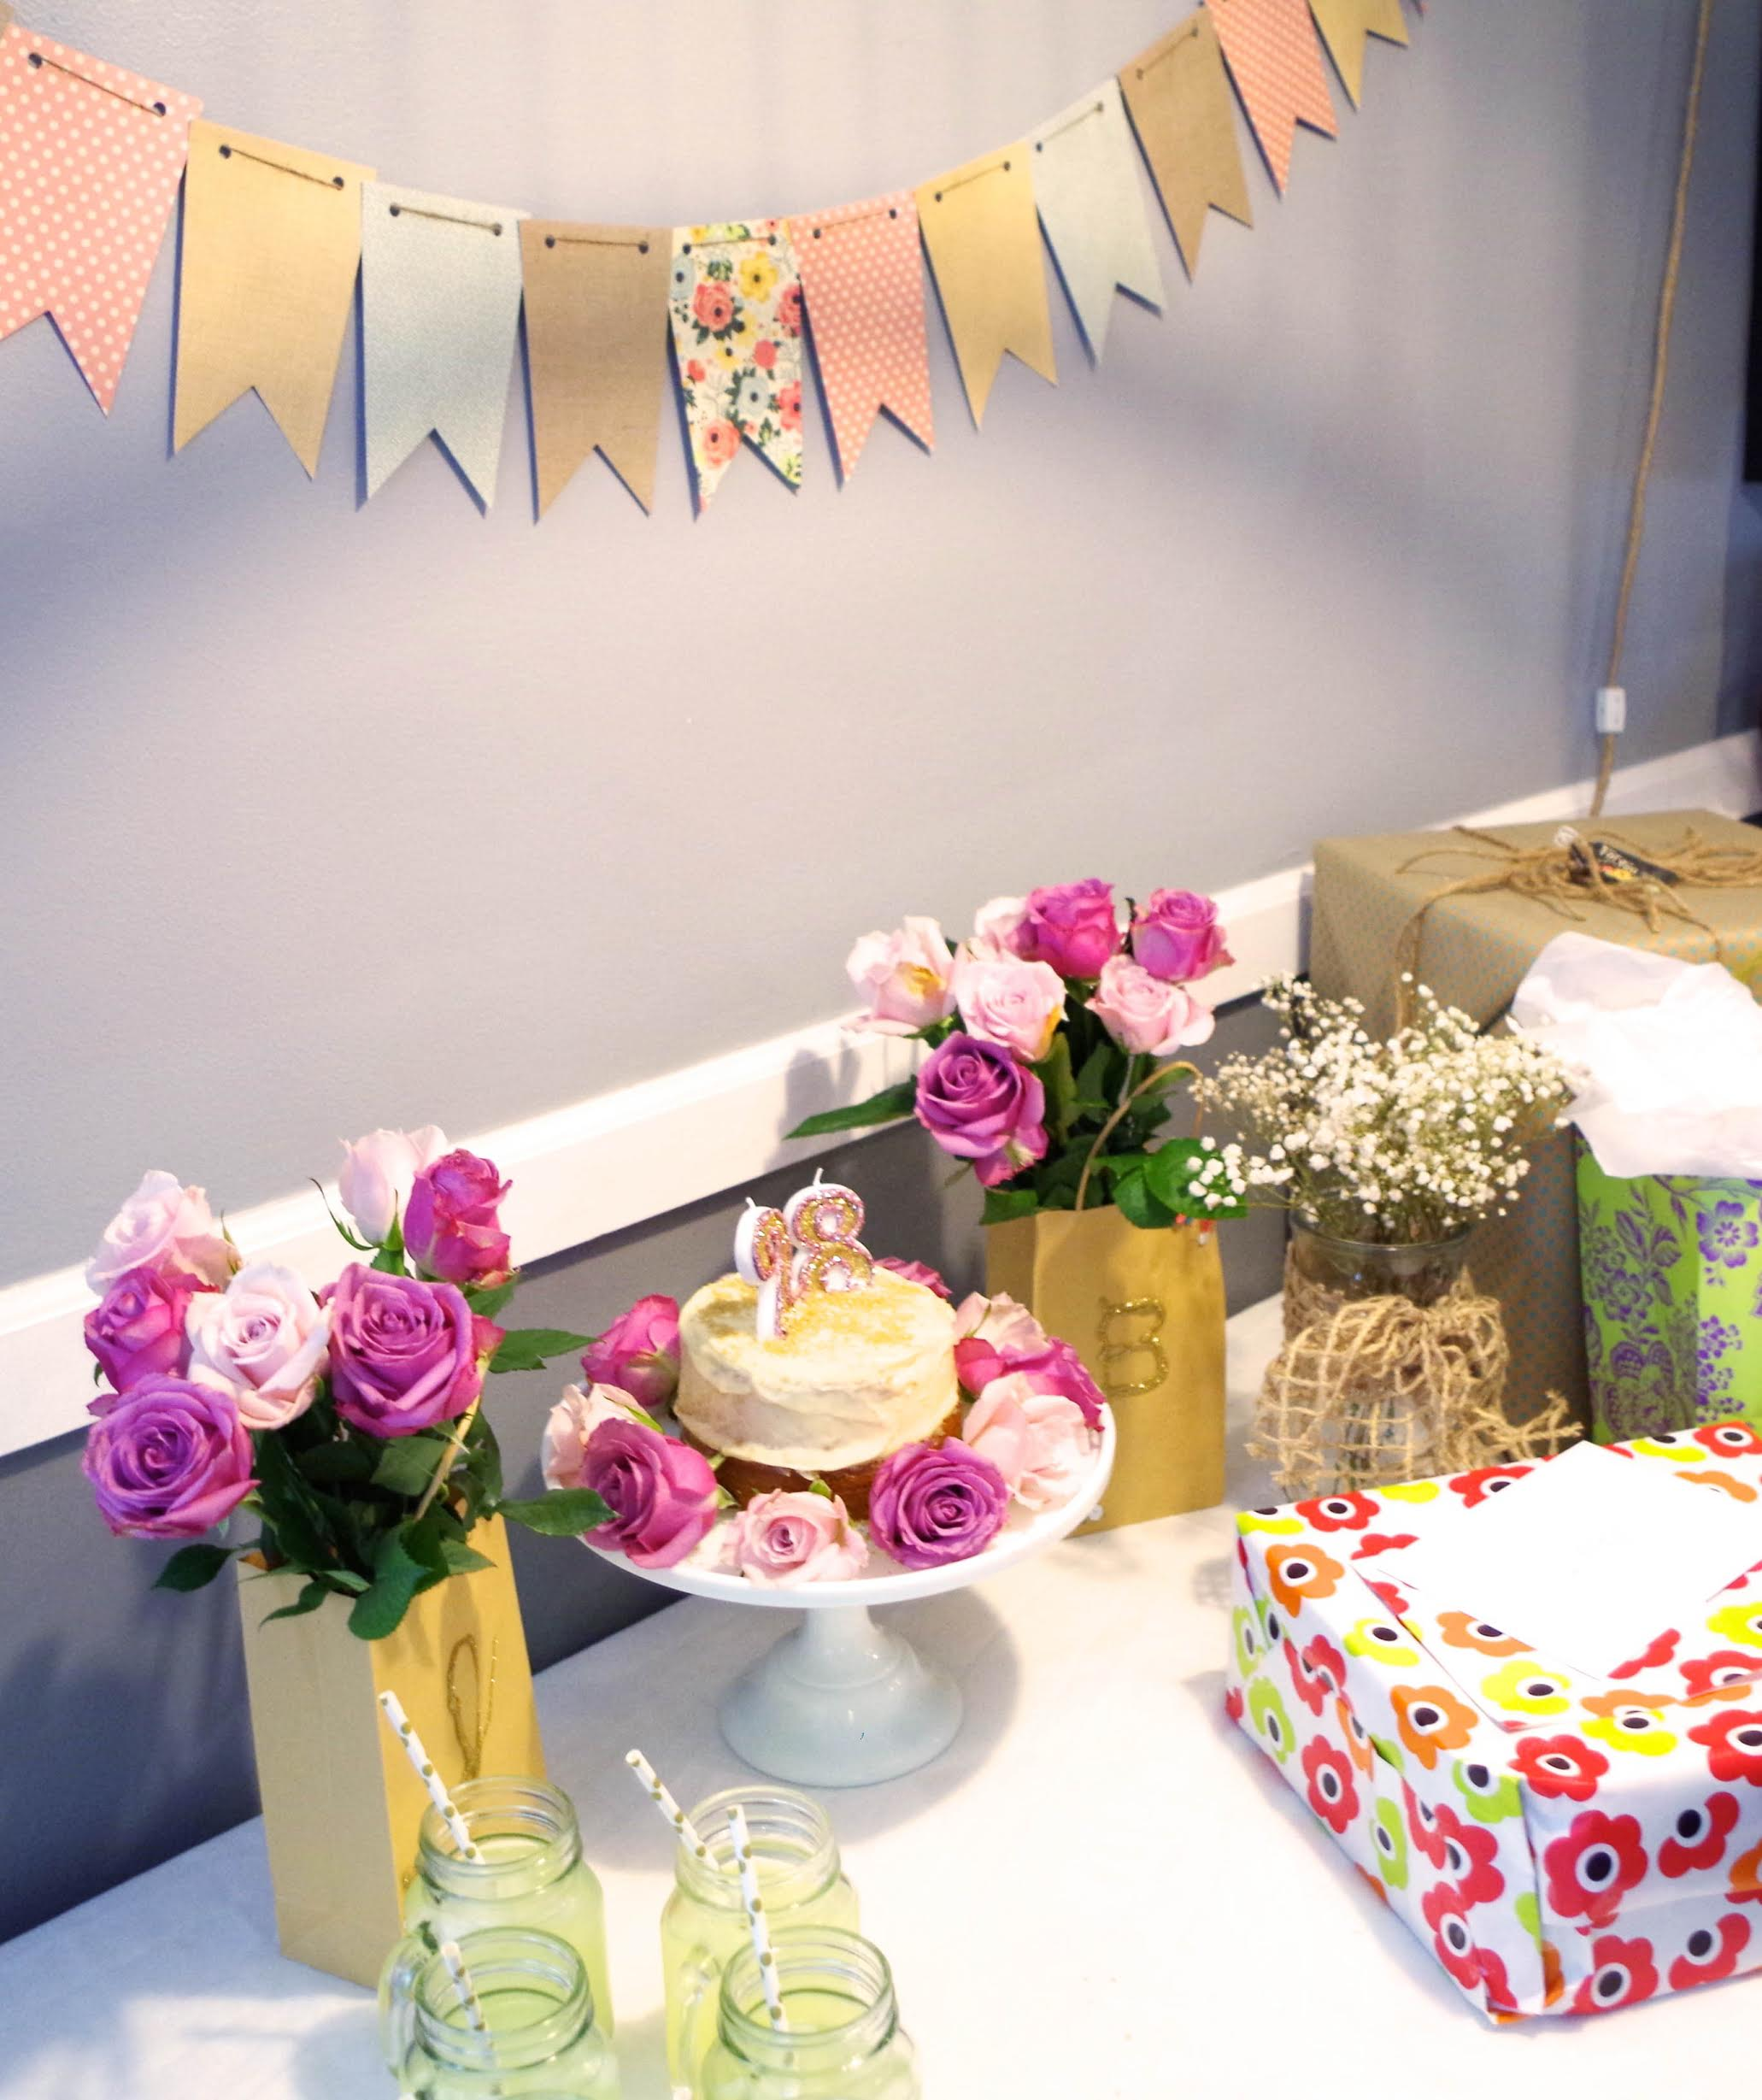 cake table, roses, banner, presents